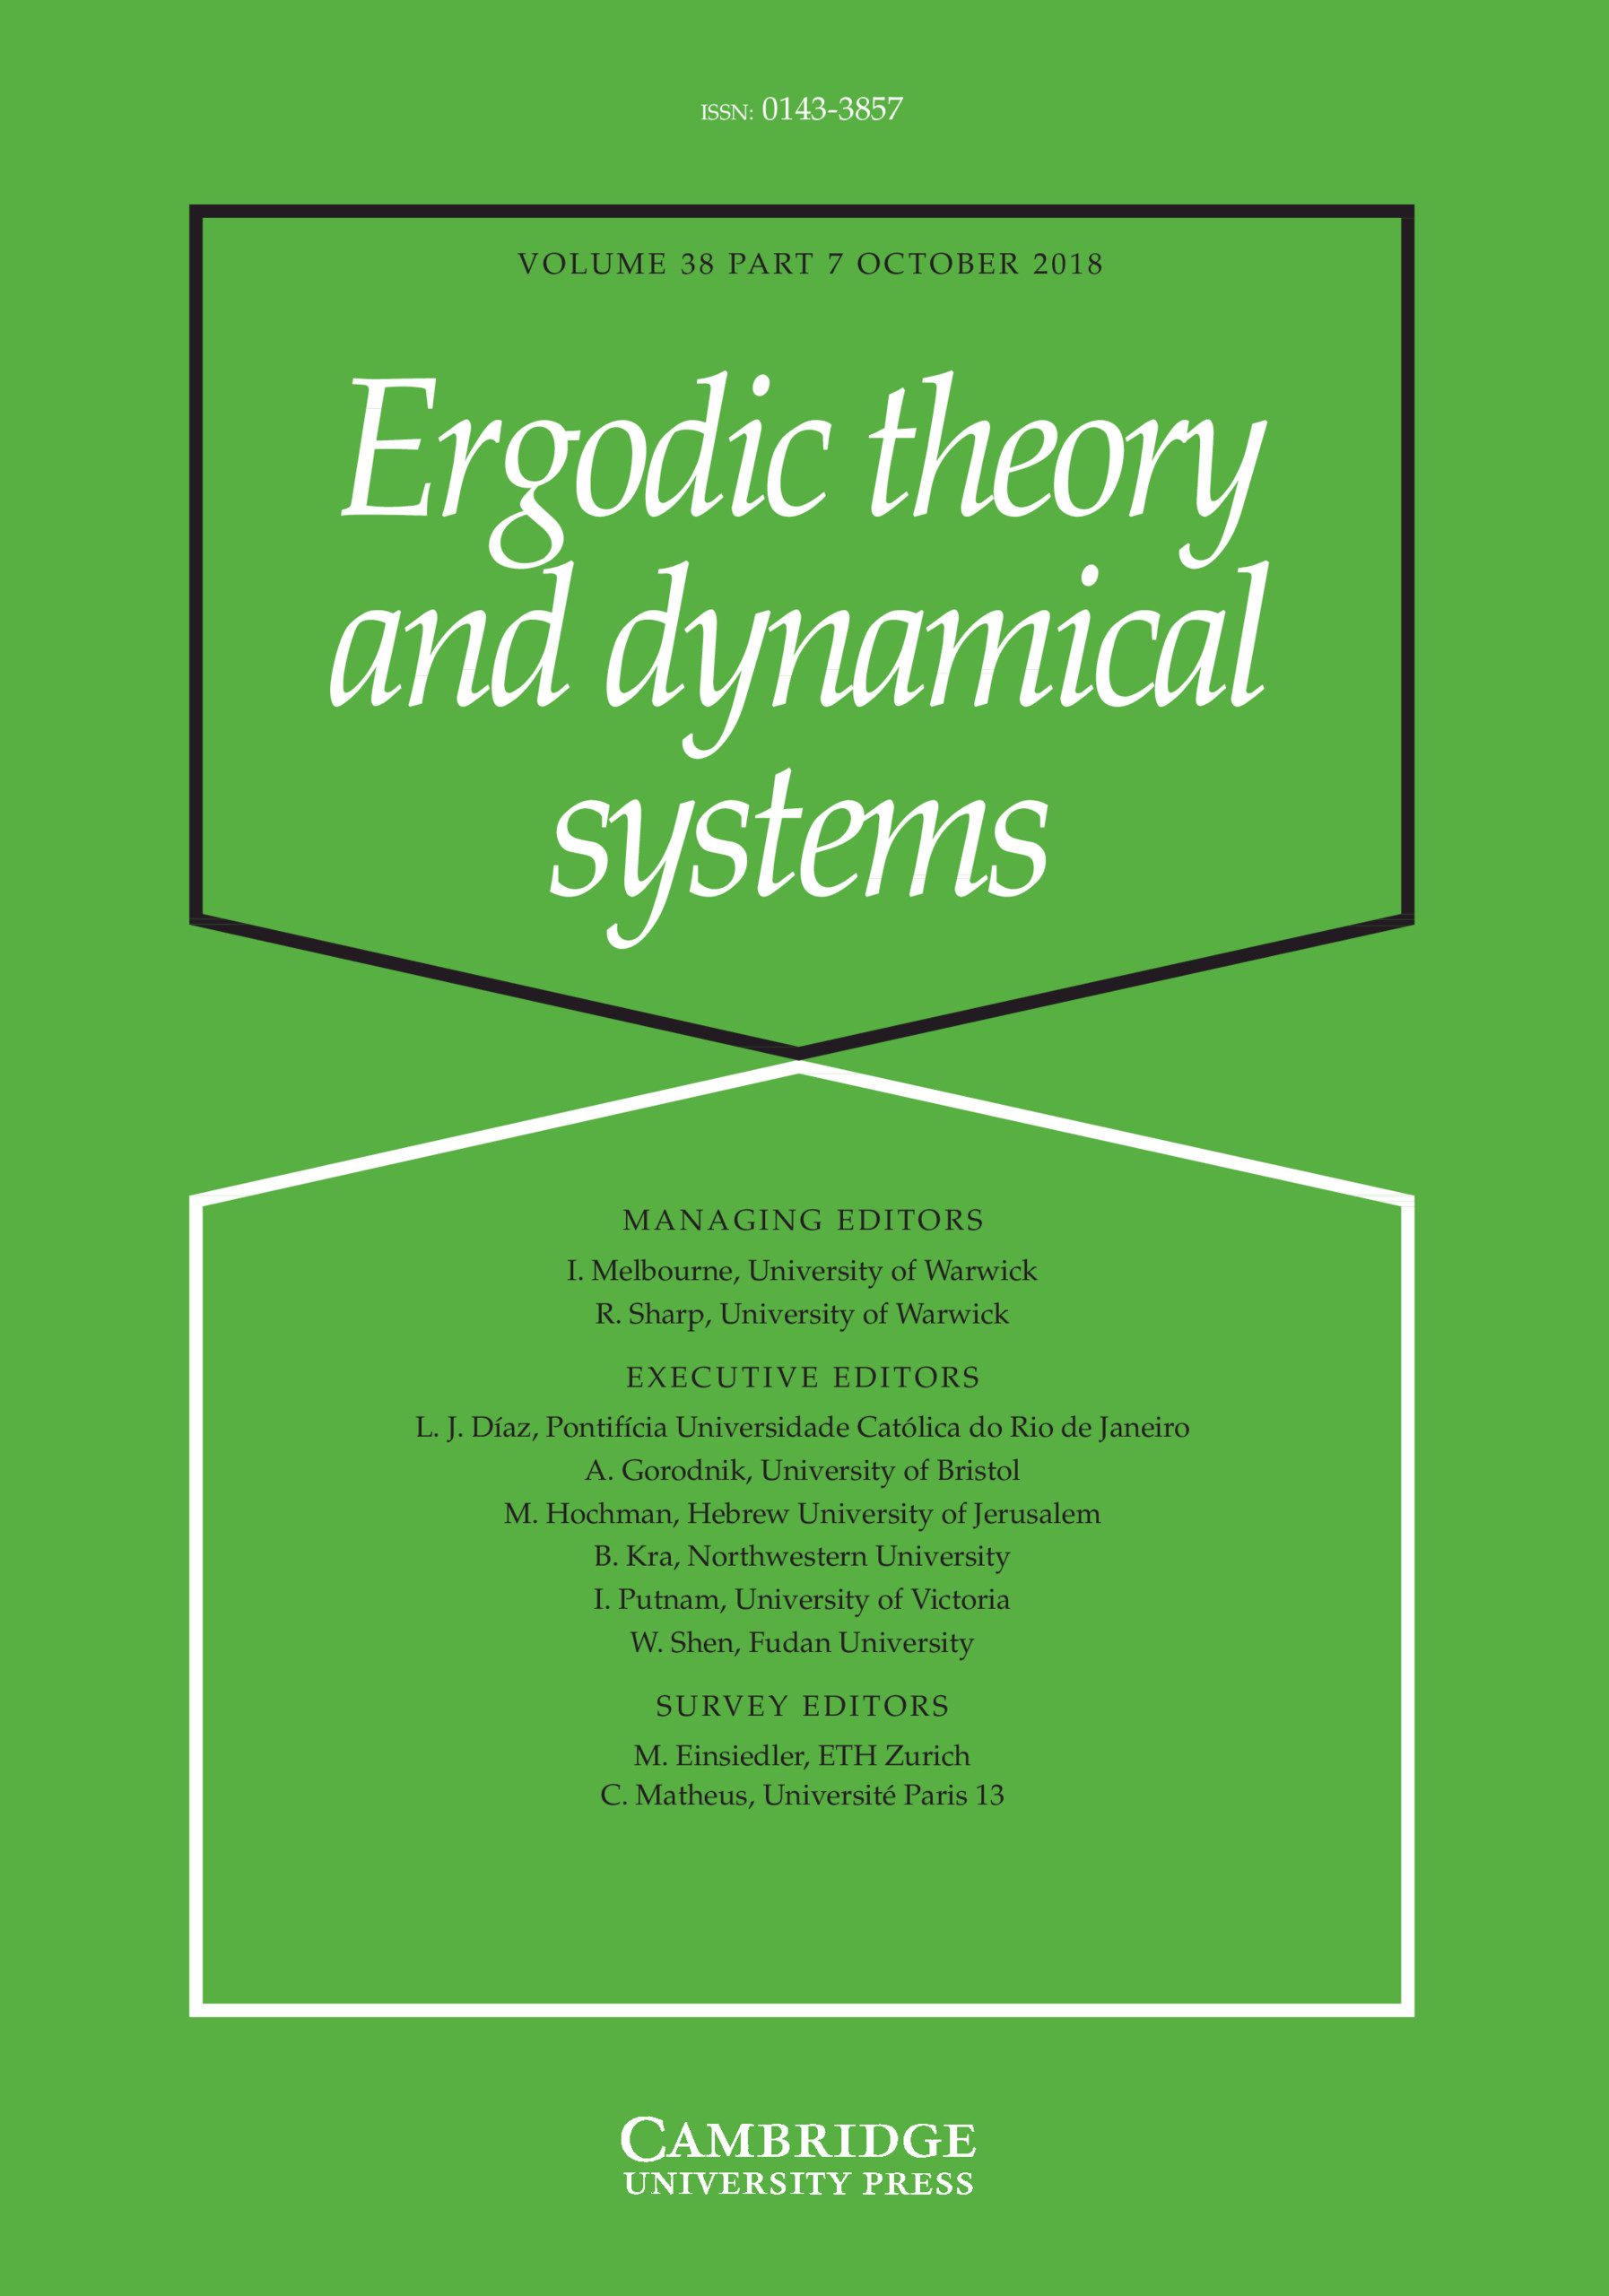 Ergodic Theory and Dynamical Systems: Volume 38 - Issue 7